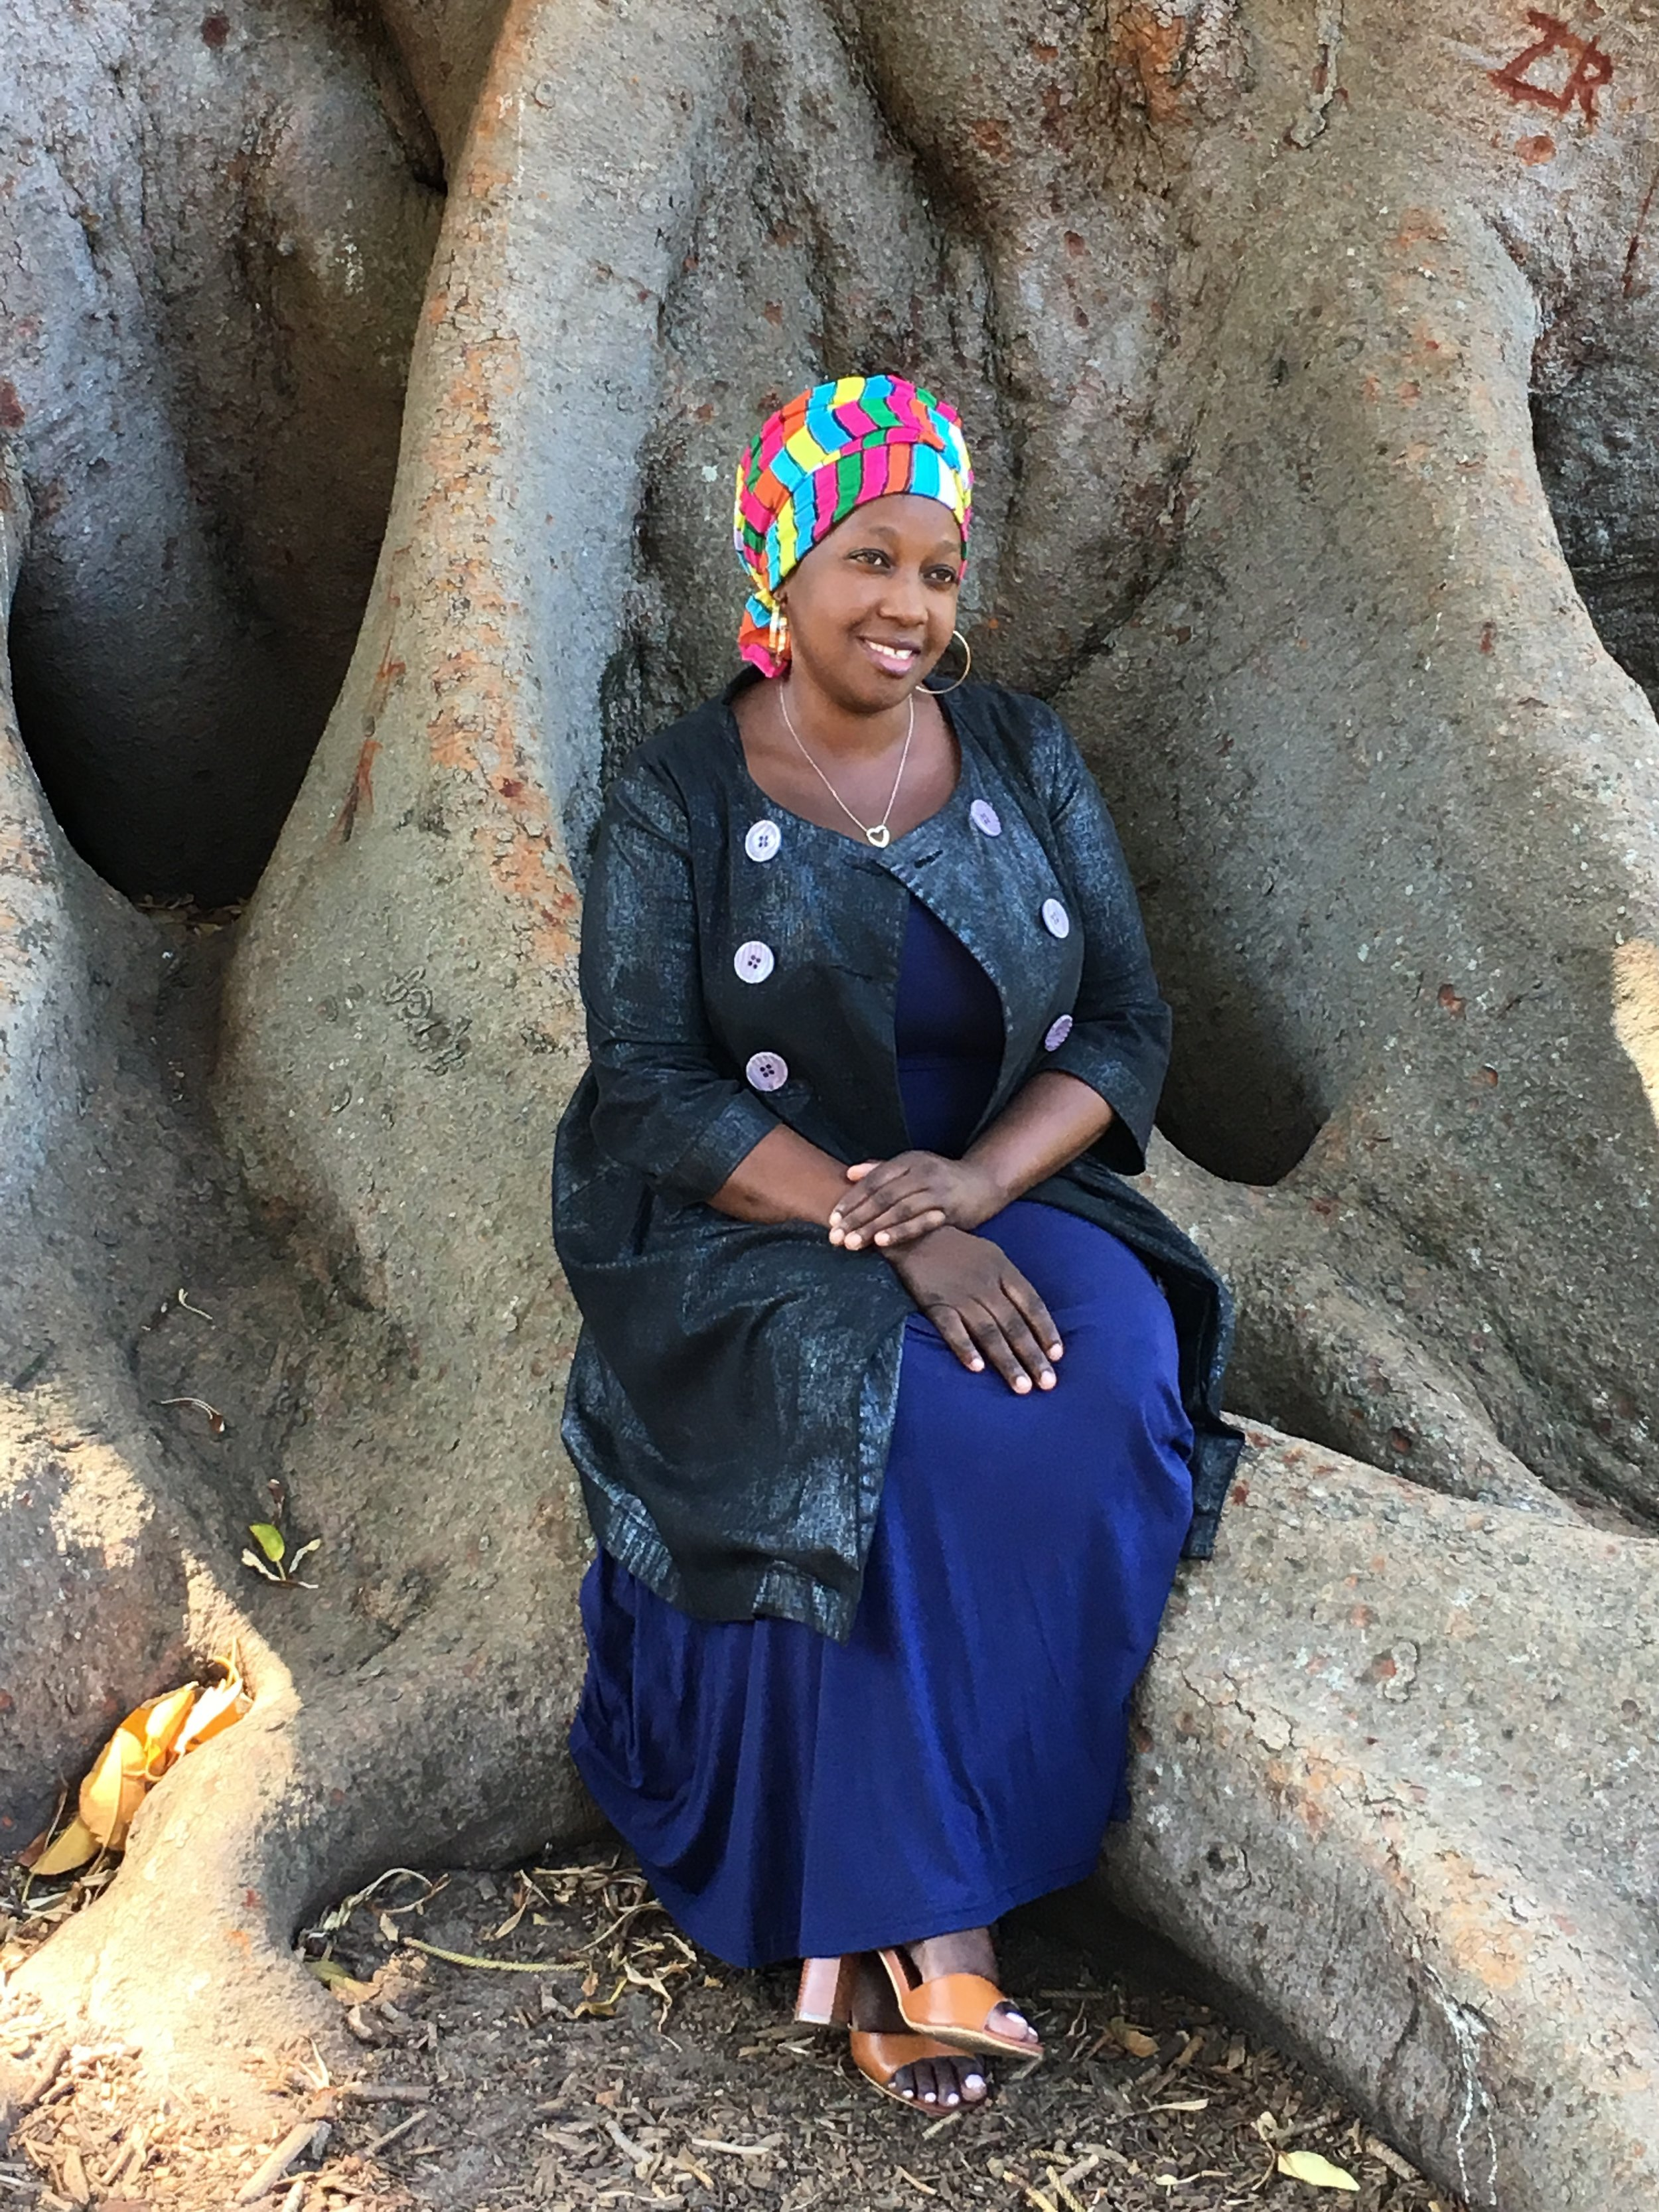 Claudine has worked for several NGOs, and dreams to take the refugee peer counselling model to other sub-Saharan African countries where she feels they will greatly benefit. Although originally from Rwanda, Claudine lived in several countries throughout Africa before settling in Cape Town. She is certified in HIV Counselling and Testing, and Peer Counselling.